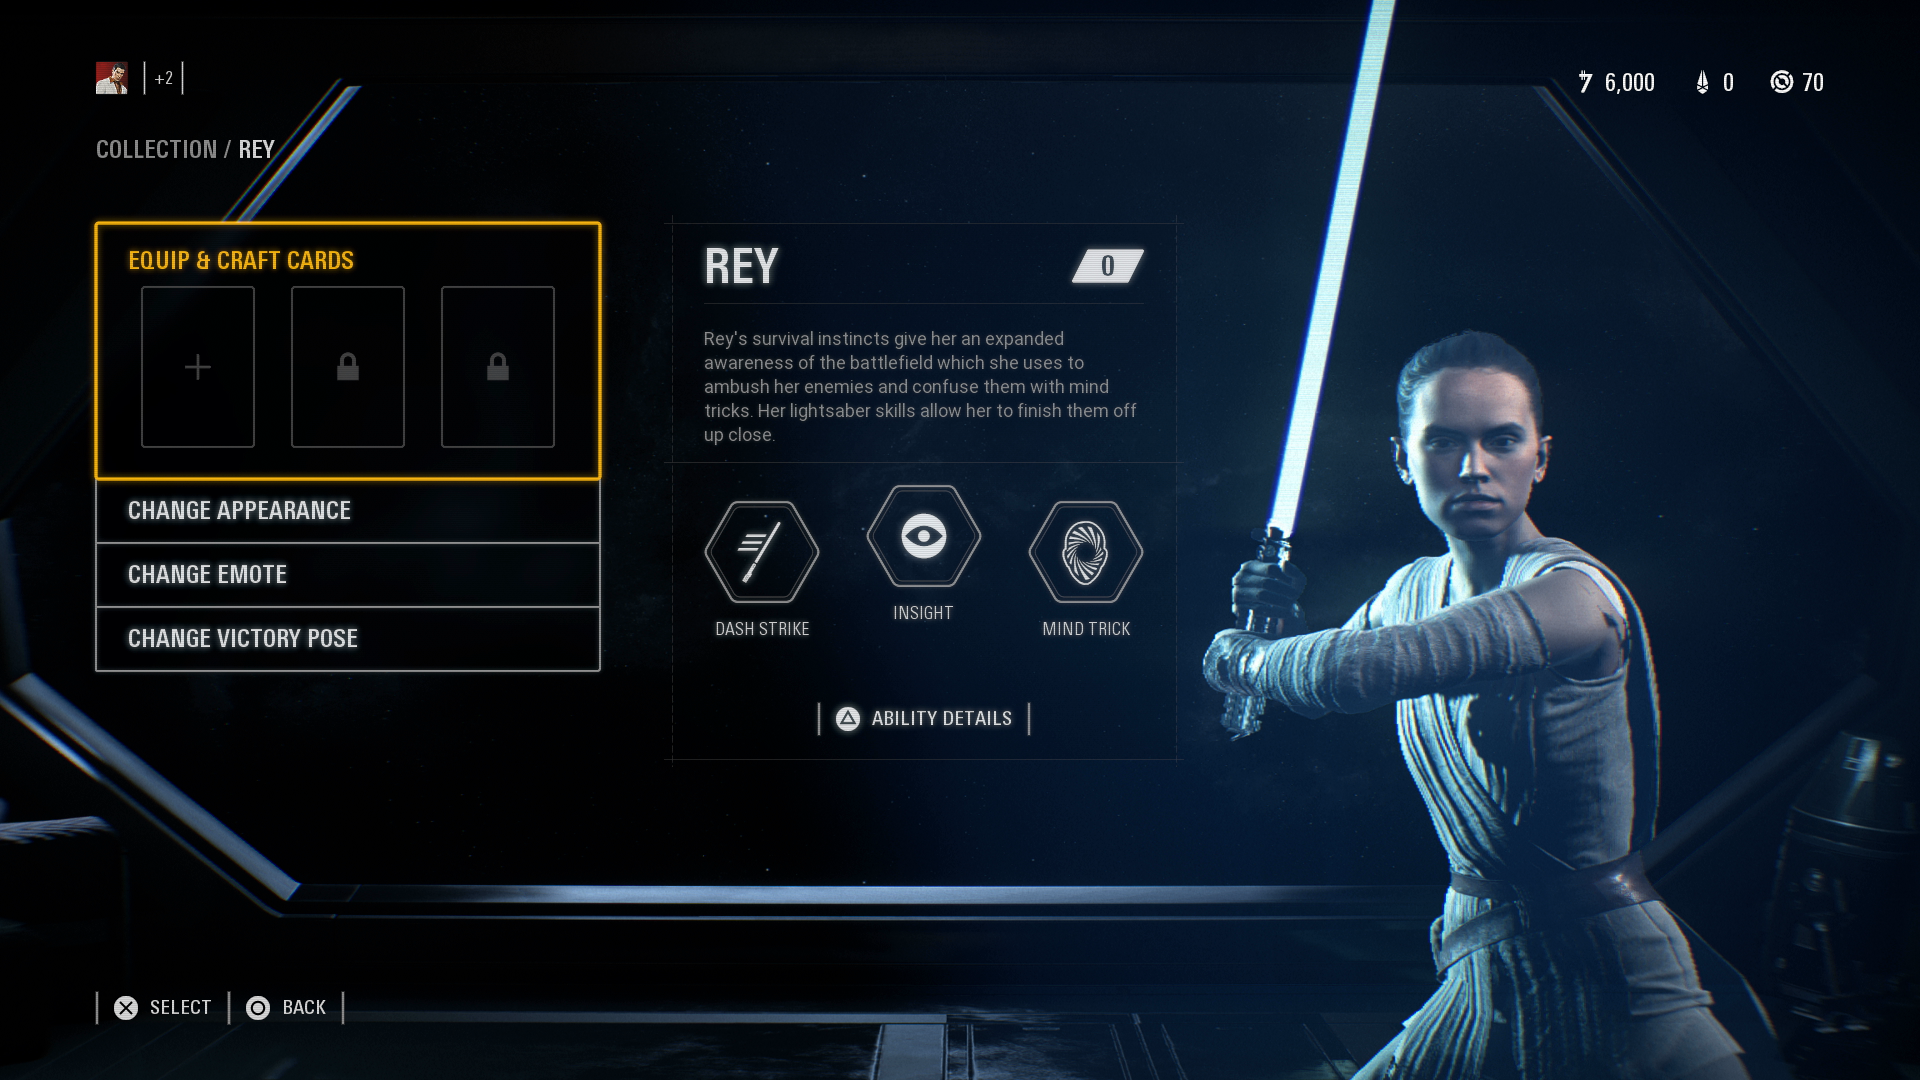 Brace Yourselves, Battlefront II's Microtransactions Are Coming Back